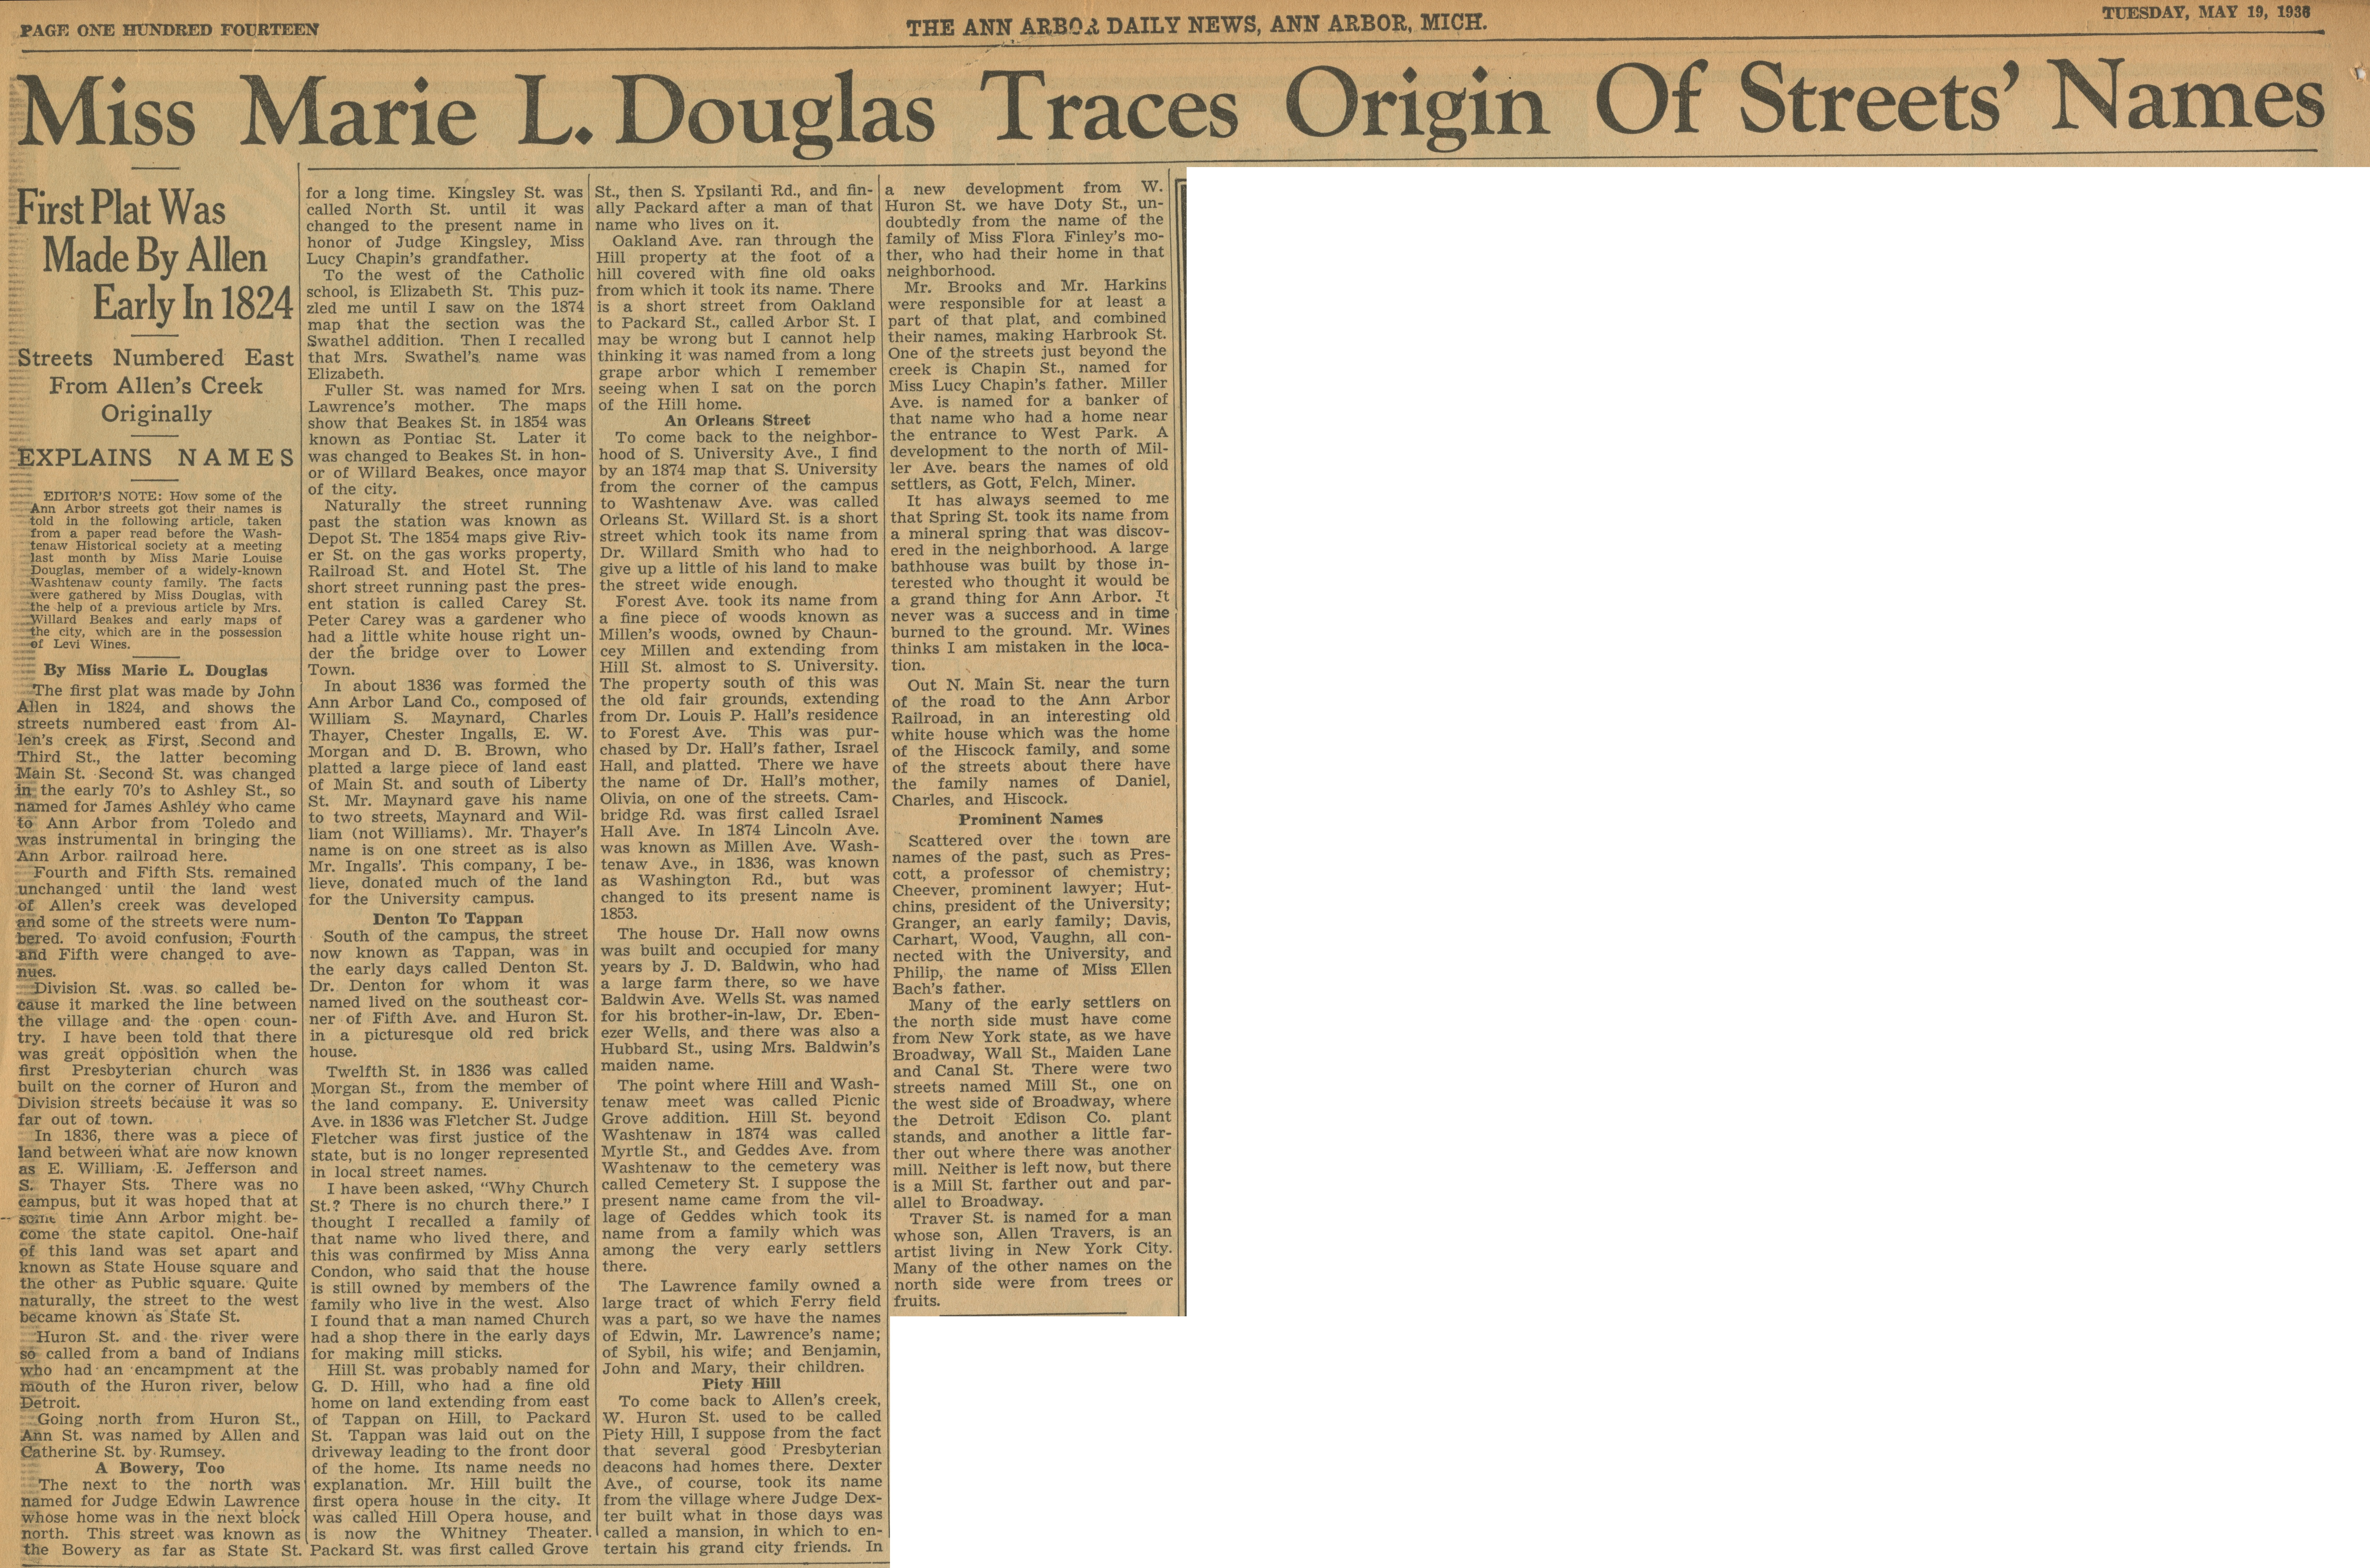 Miss Marie L. Douglas Traces Origin of Streets' Names - First Plat Was Made By Allen Early in 1824 - Streets Numbered East From Allen's Creek Originally image